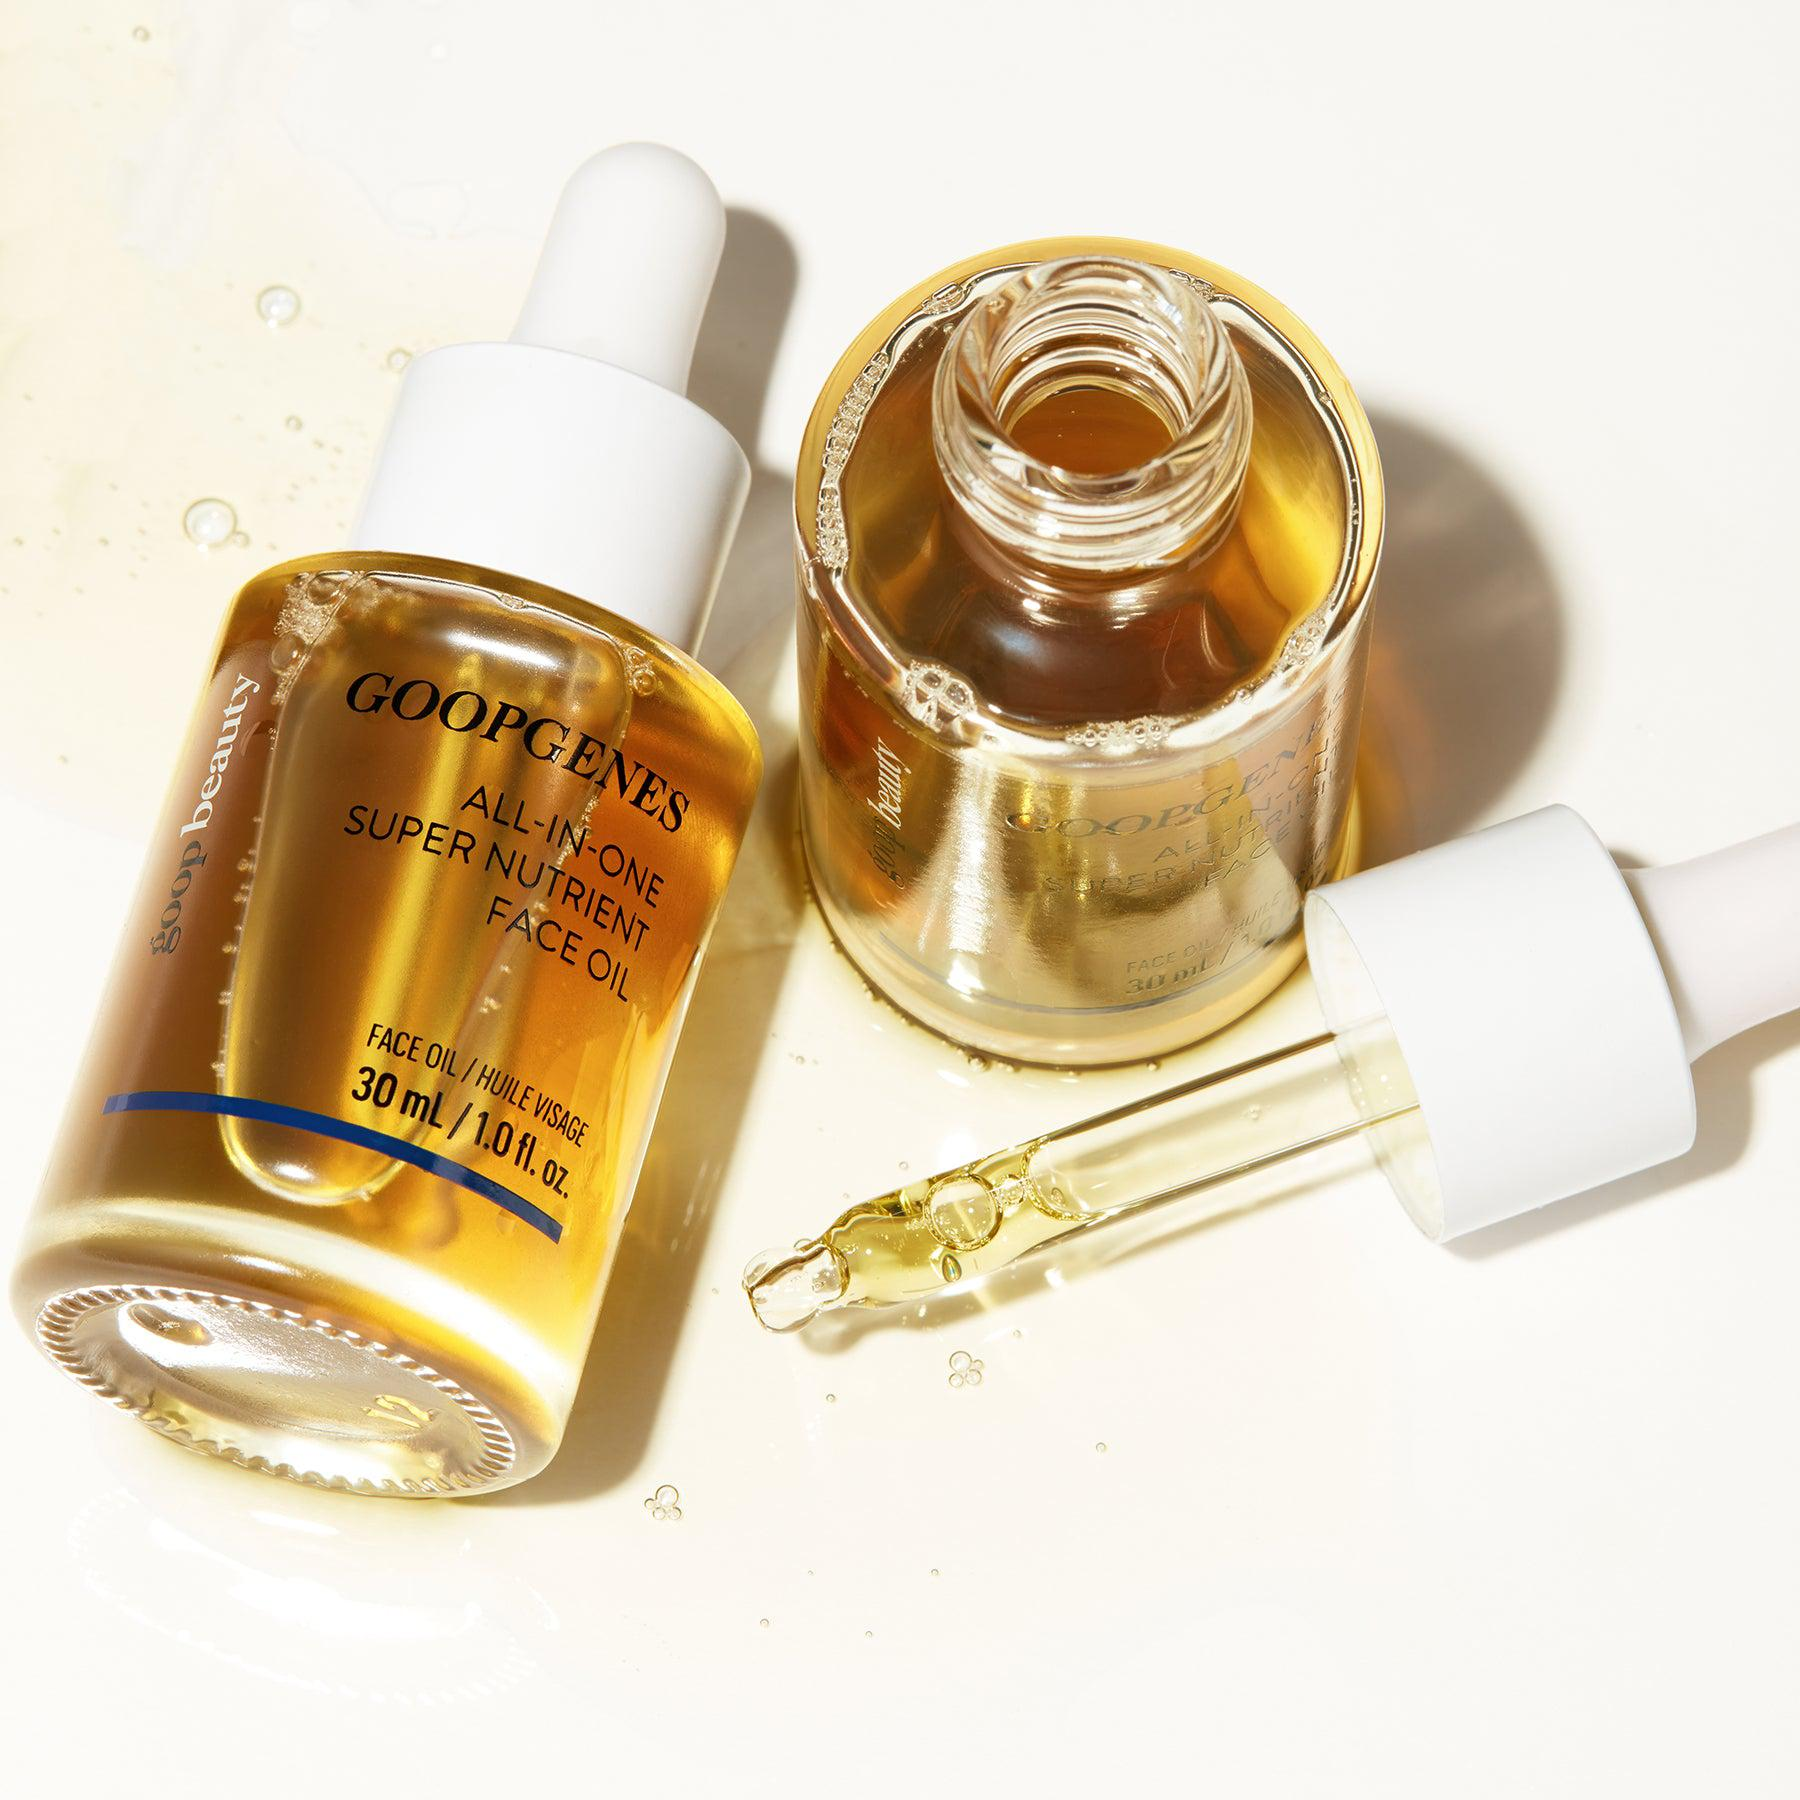 Goopgenes All-In One Super Nutrient Face Oil